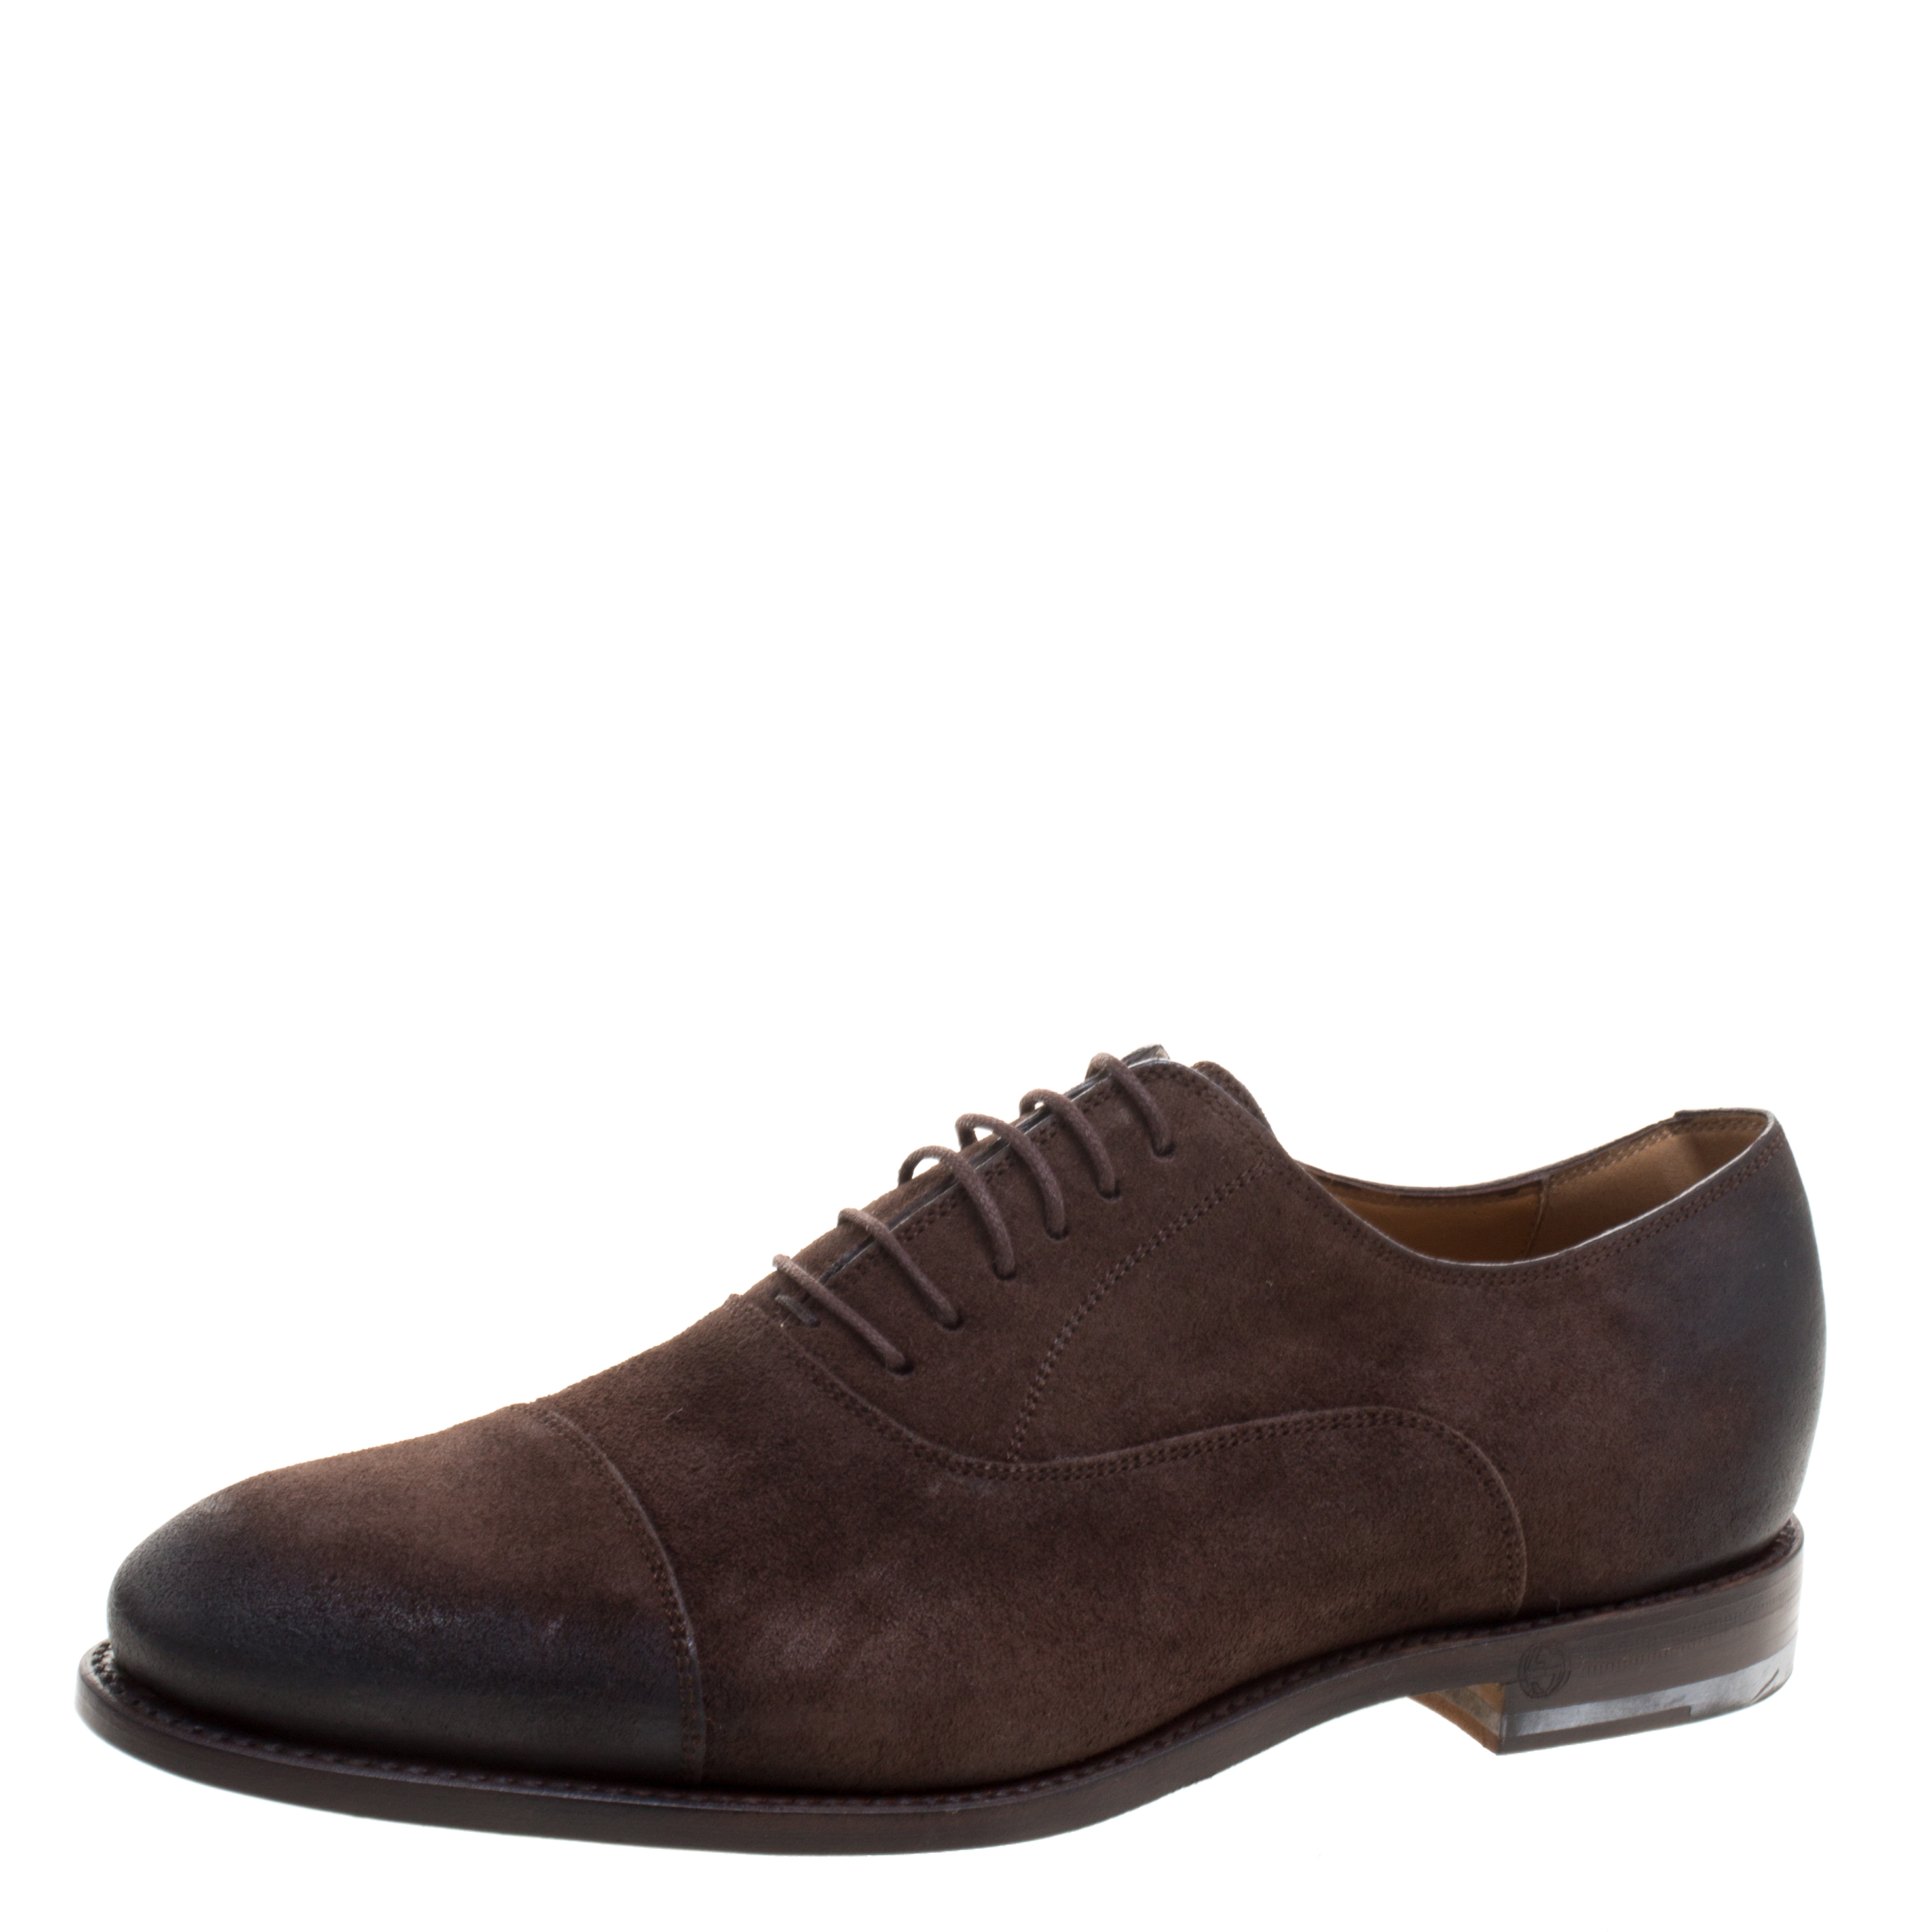 c290102e76c Buy Gucci Brown Suede Lace Up Oxfords Size 42 110969 at best price